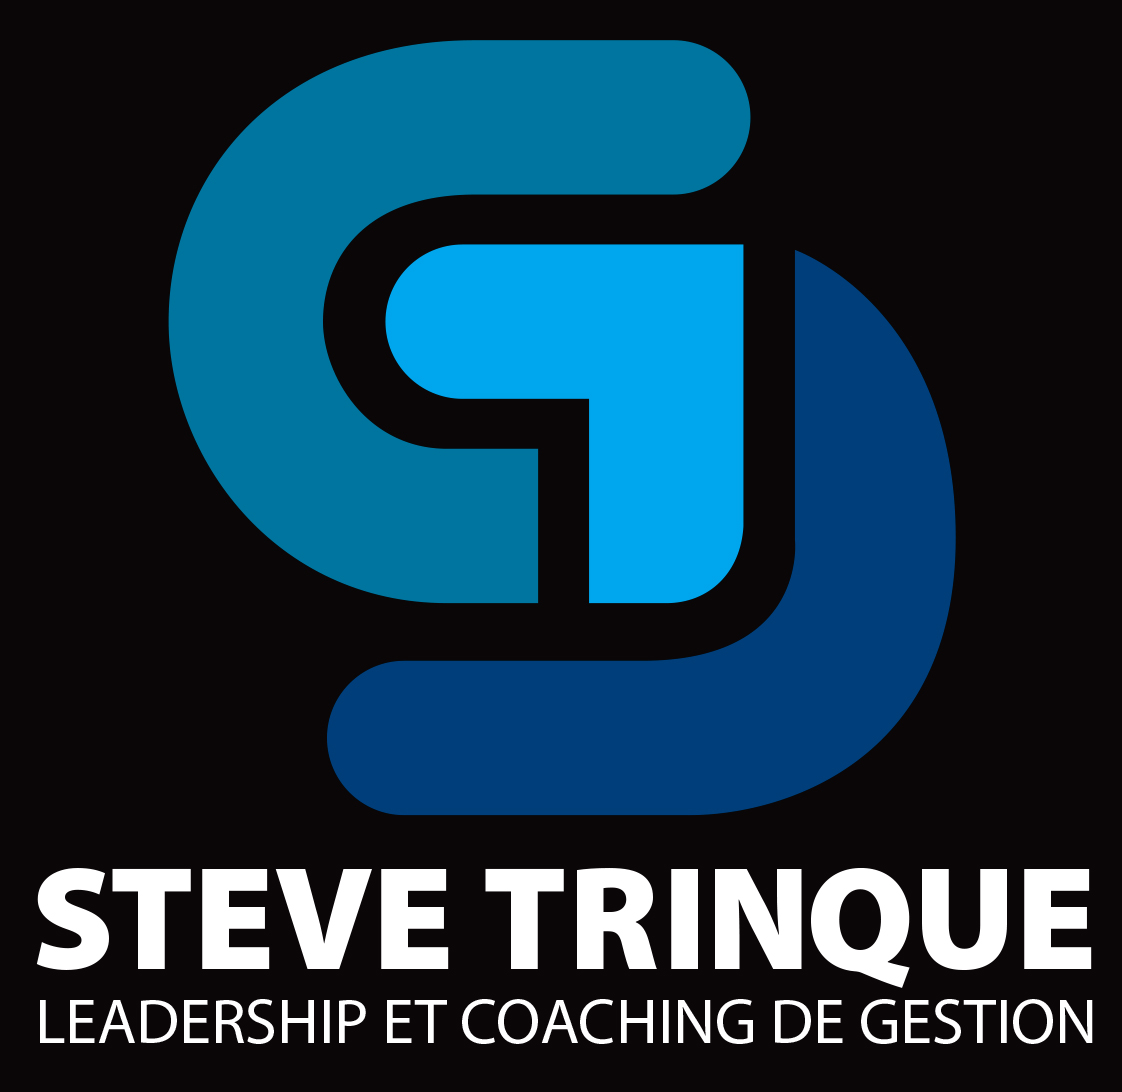 Steve Trinque, leadership et coaching de gestion ICF Logo